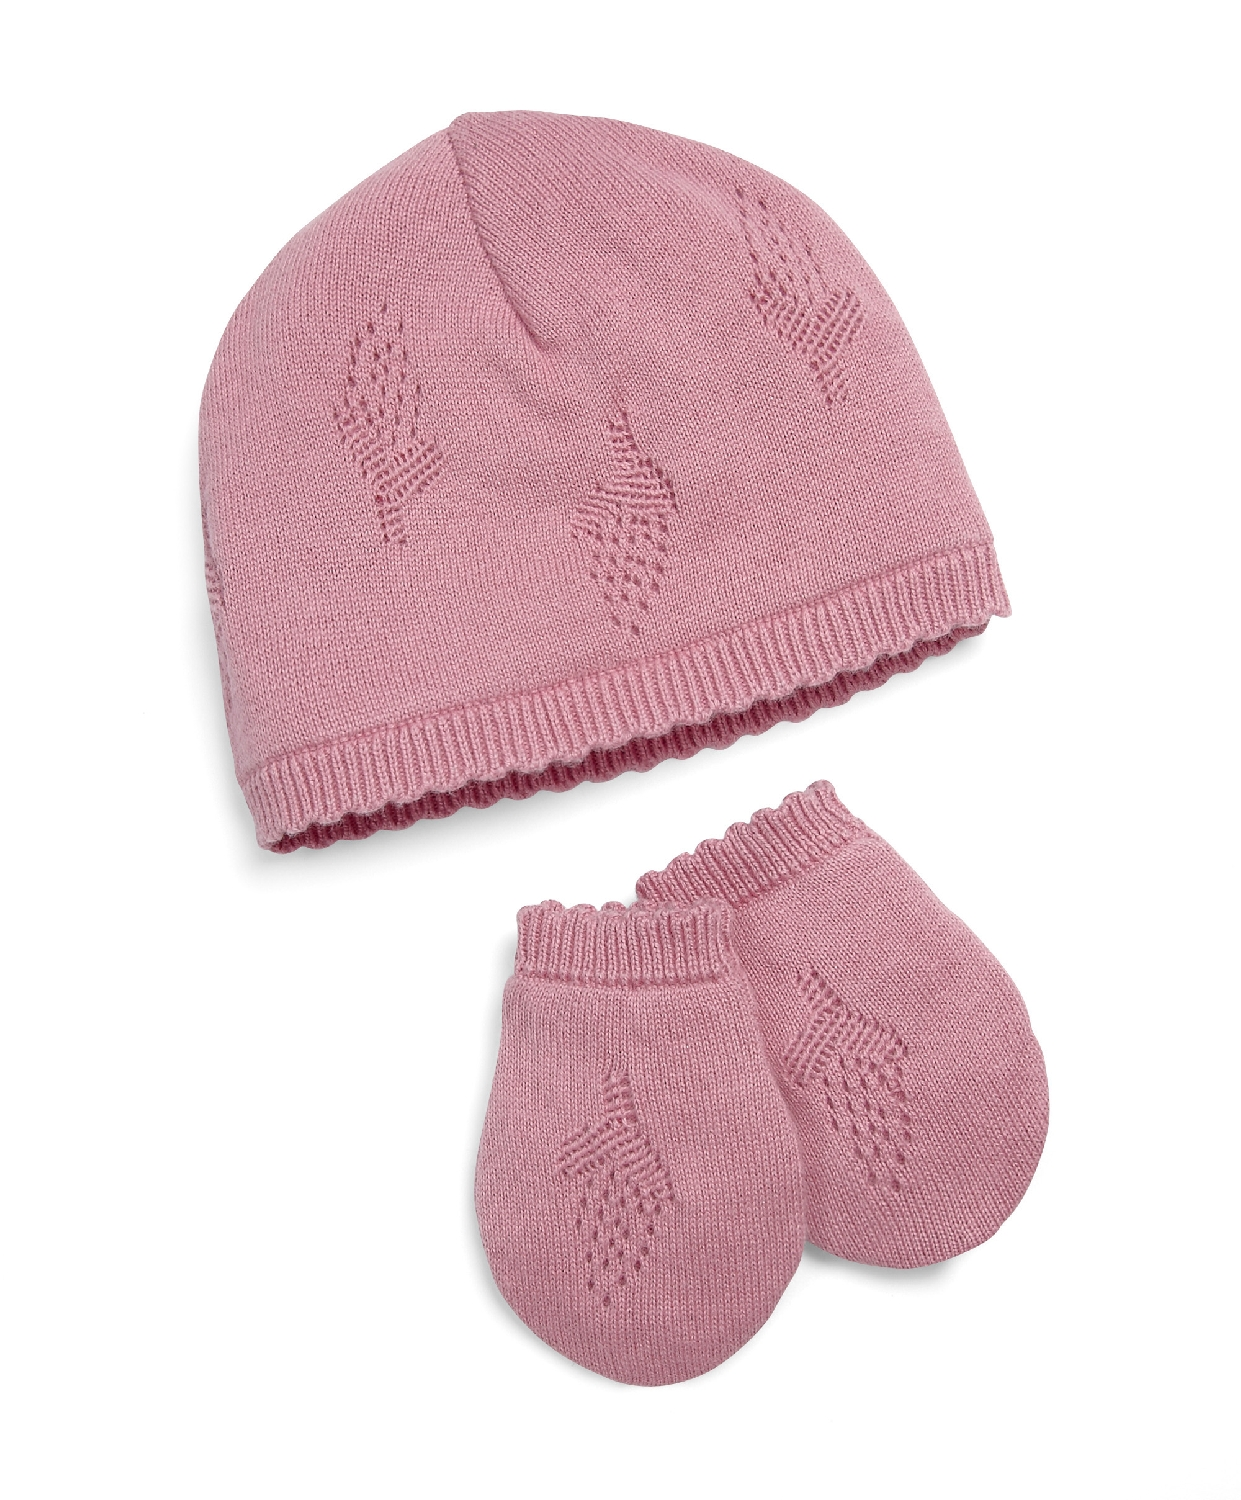 s432ap5-flower-knit-hat-&amp-mitts-